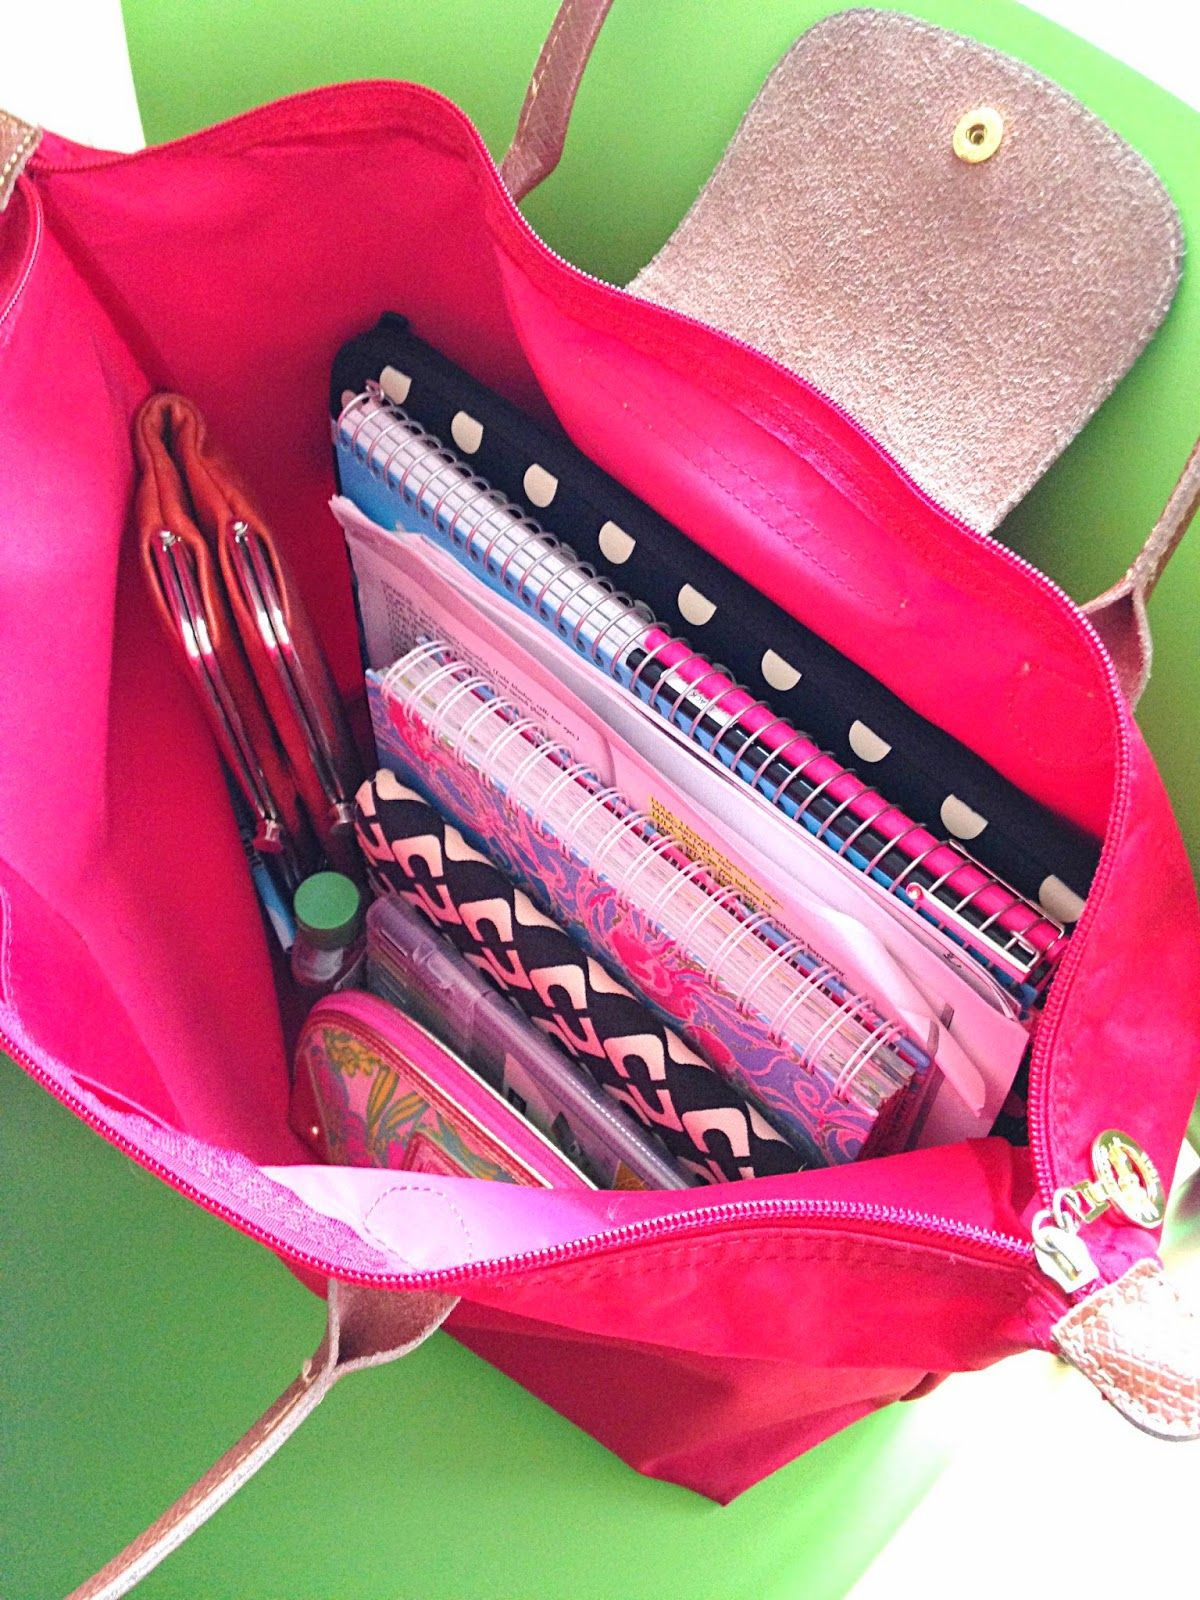 School bag for year 7 - Organize Your School Bag With Notebooks Folders And Pencil Cases To Make Life Easier